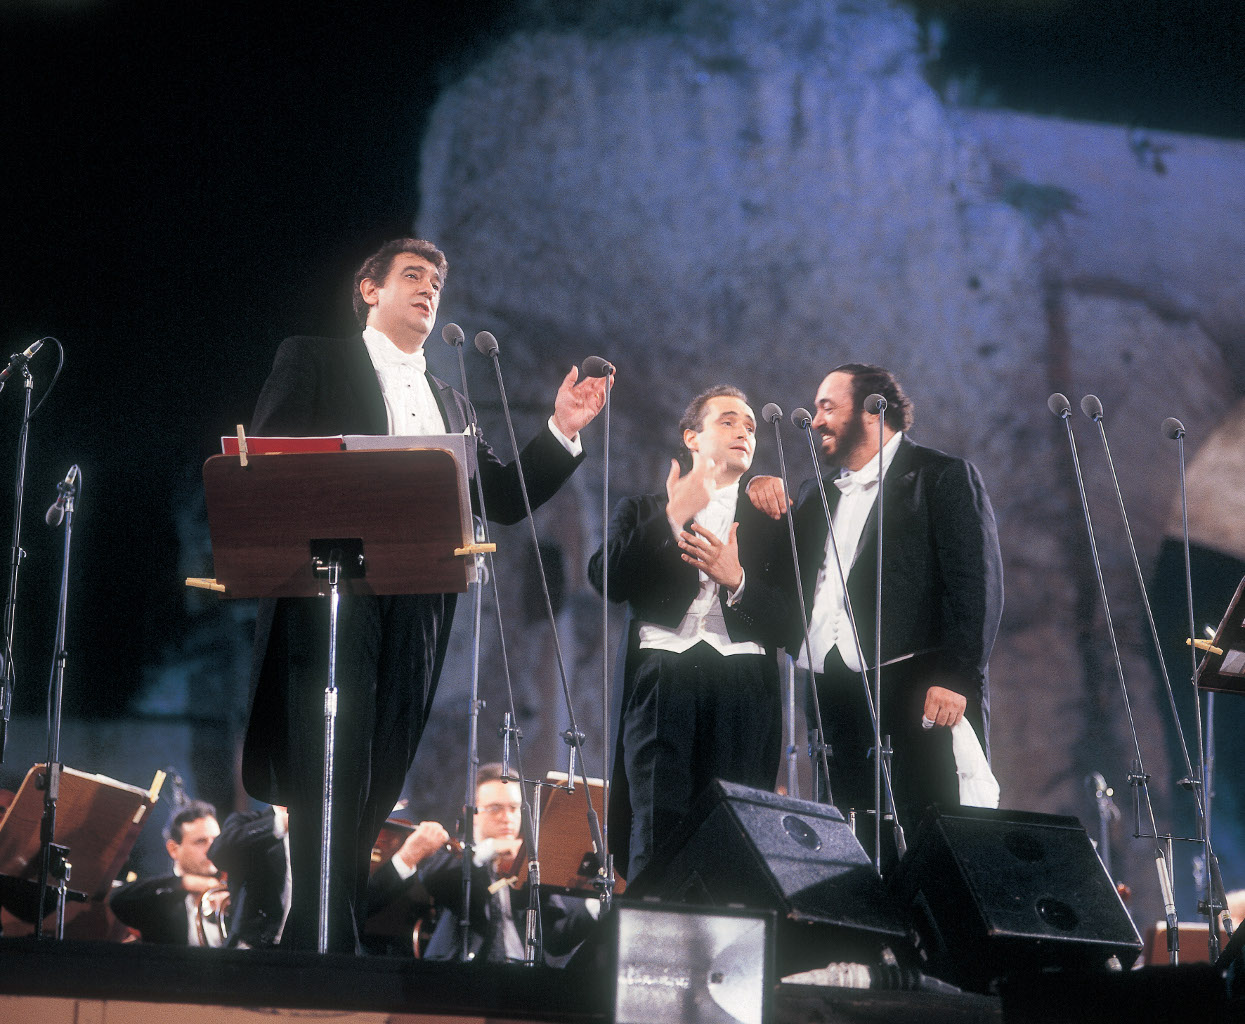 0741799-3tenors-13_(c)_Decca_Vivianne_Purdom_all_rights_Decca.jpg